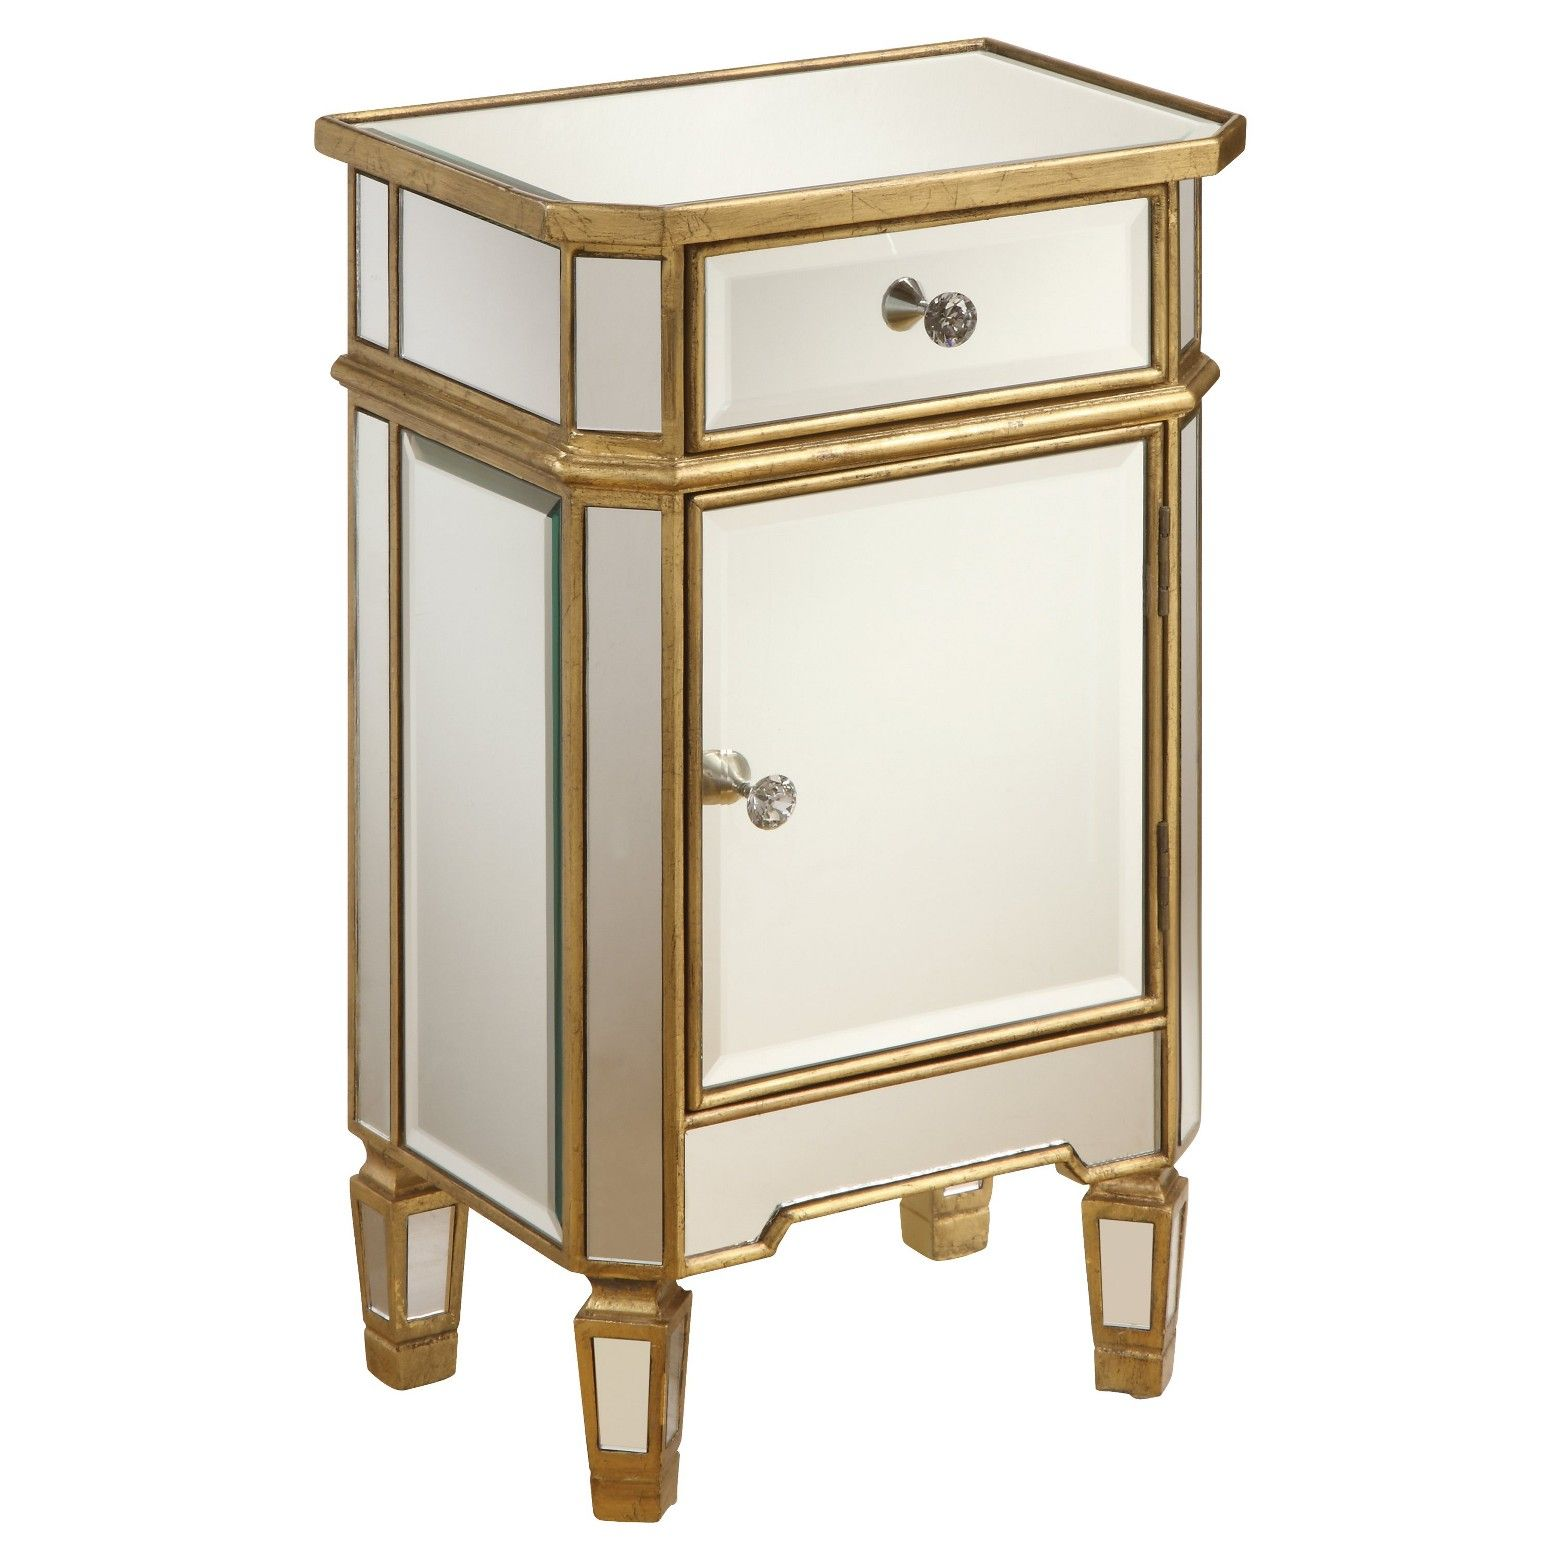 Storage Chest One Door Mirrored Christopher Knight Home Target Mirror Cabinets Mirrored End Table Home Furniture